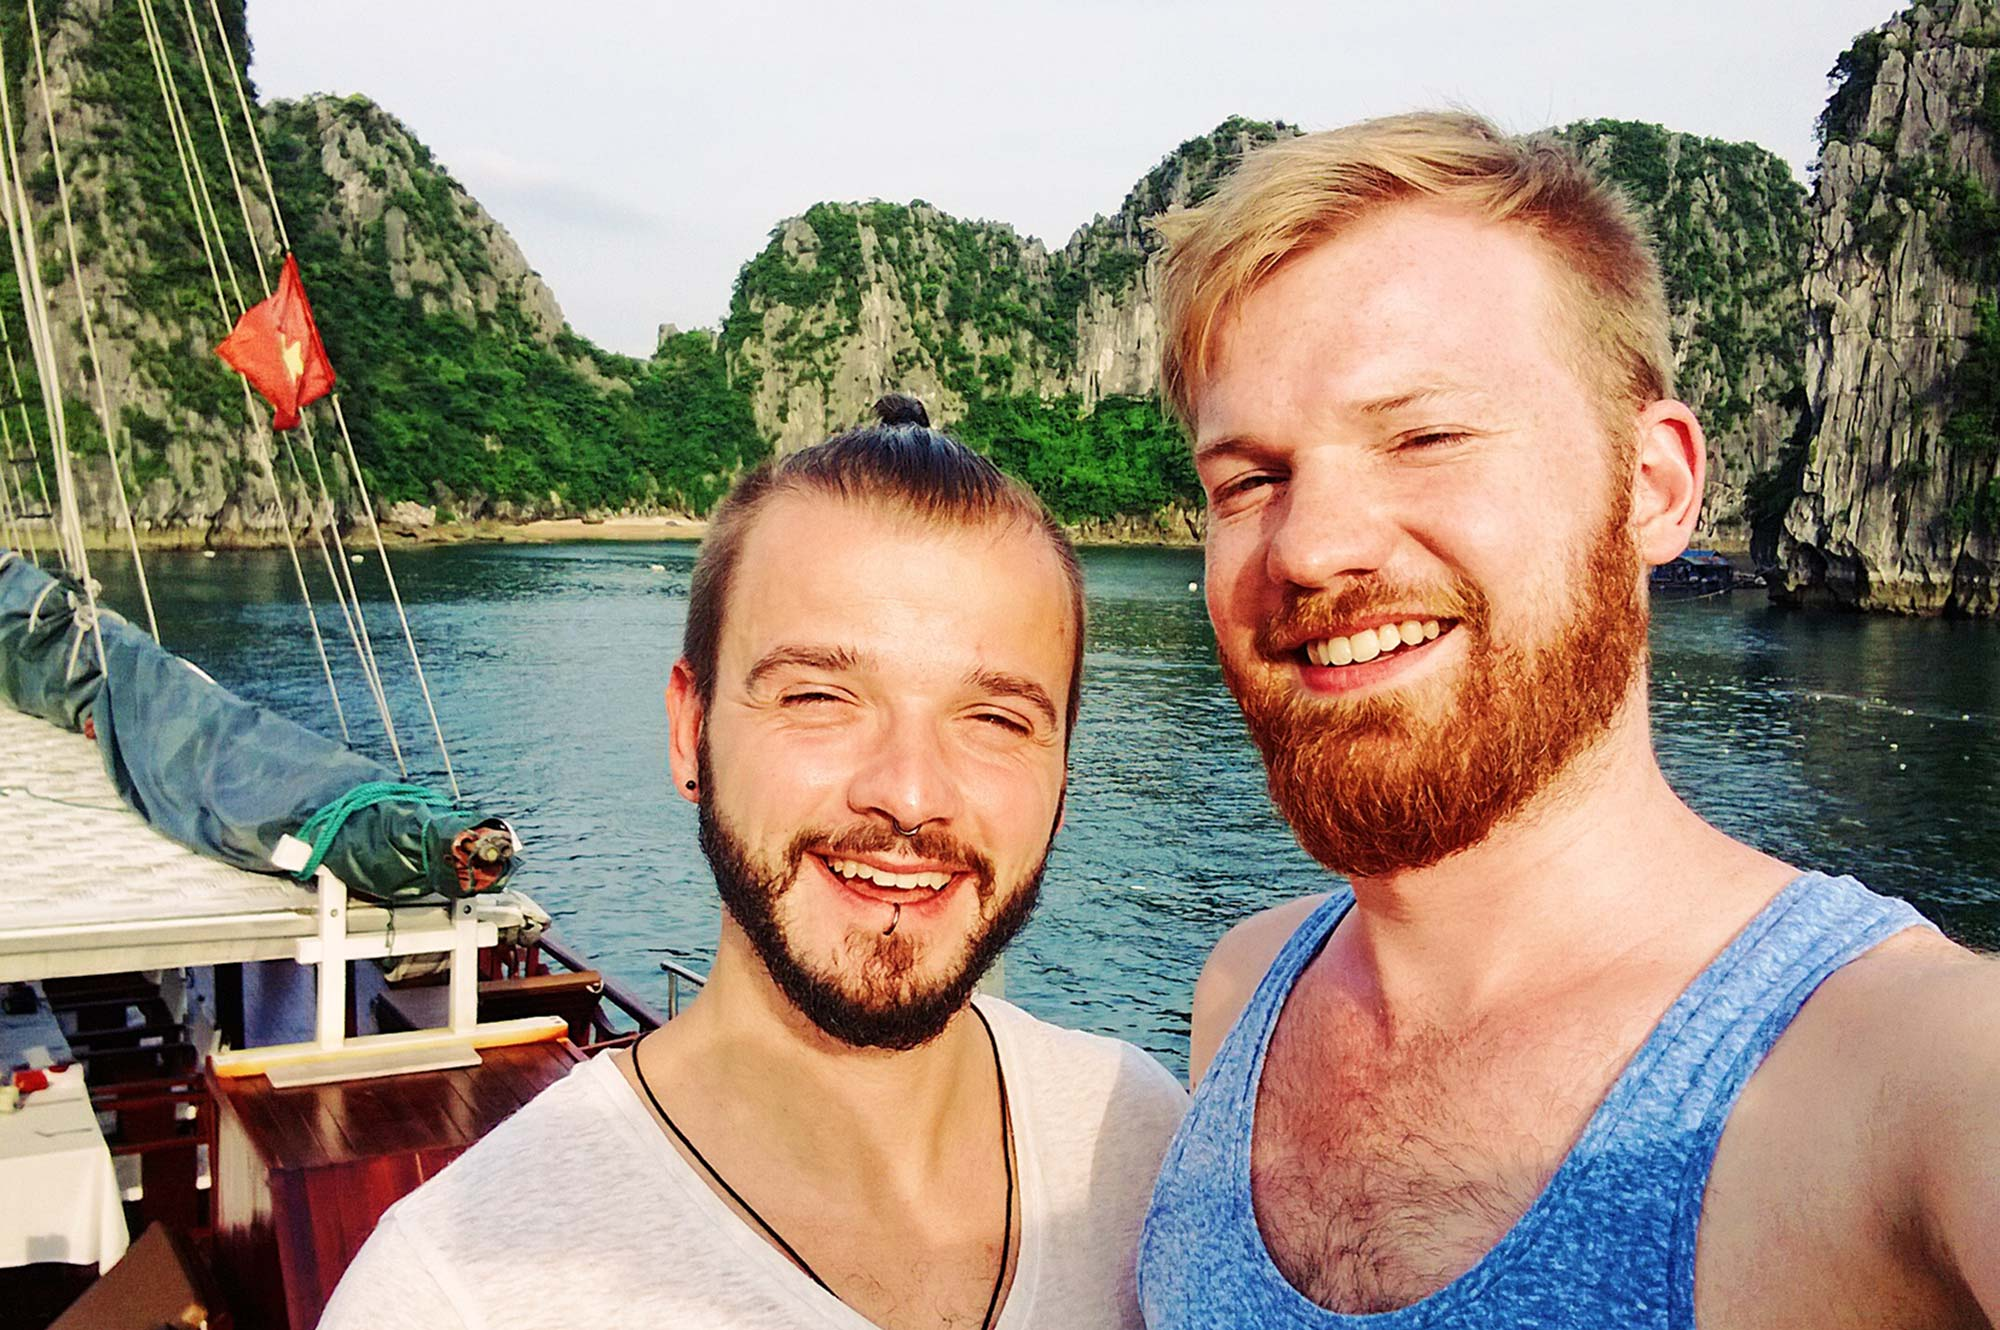 Gay Travel Adventure Vietnam Gay Travel Blogger Karl & Daan on a Halong Bay Cruise | Top Highlights Best Photos Gay Couple Travel Vietnam © CoupleofMen.com